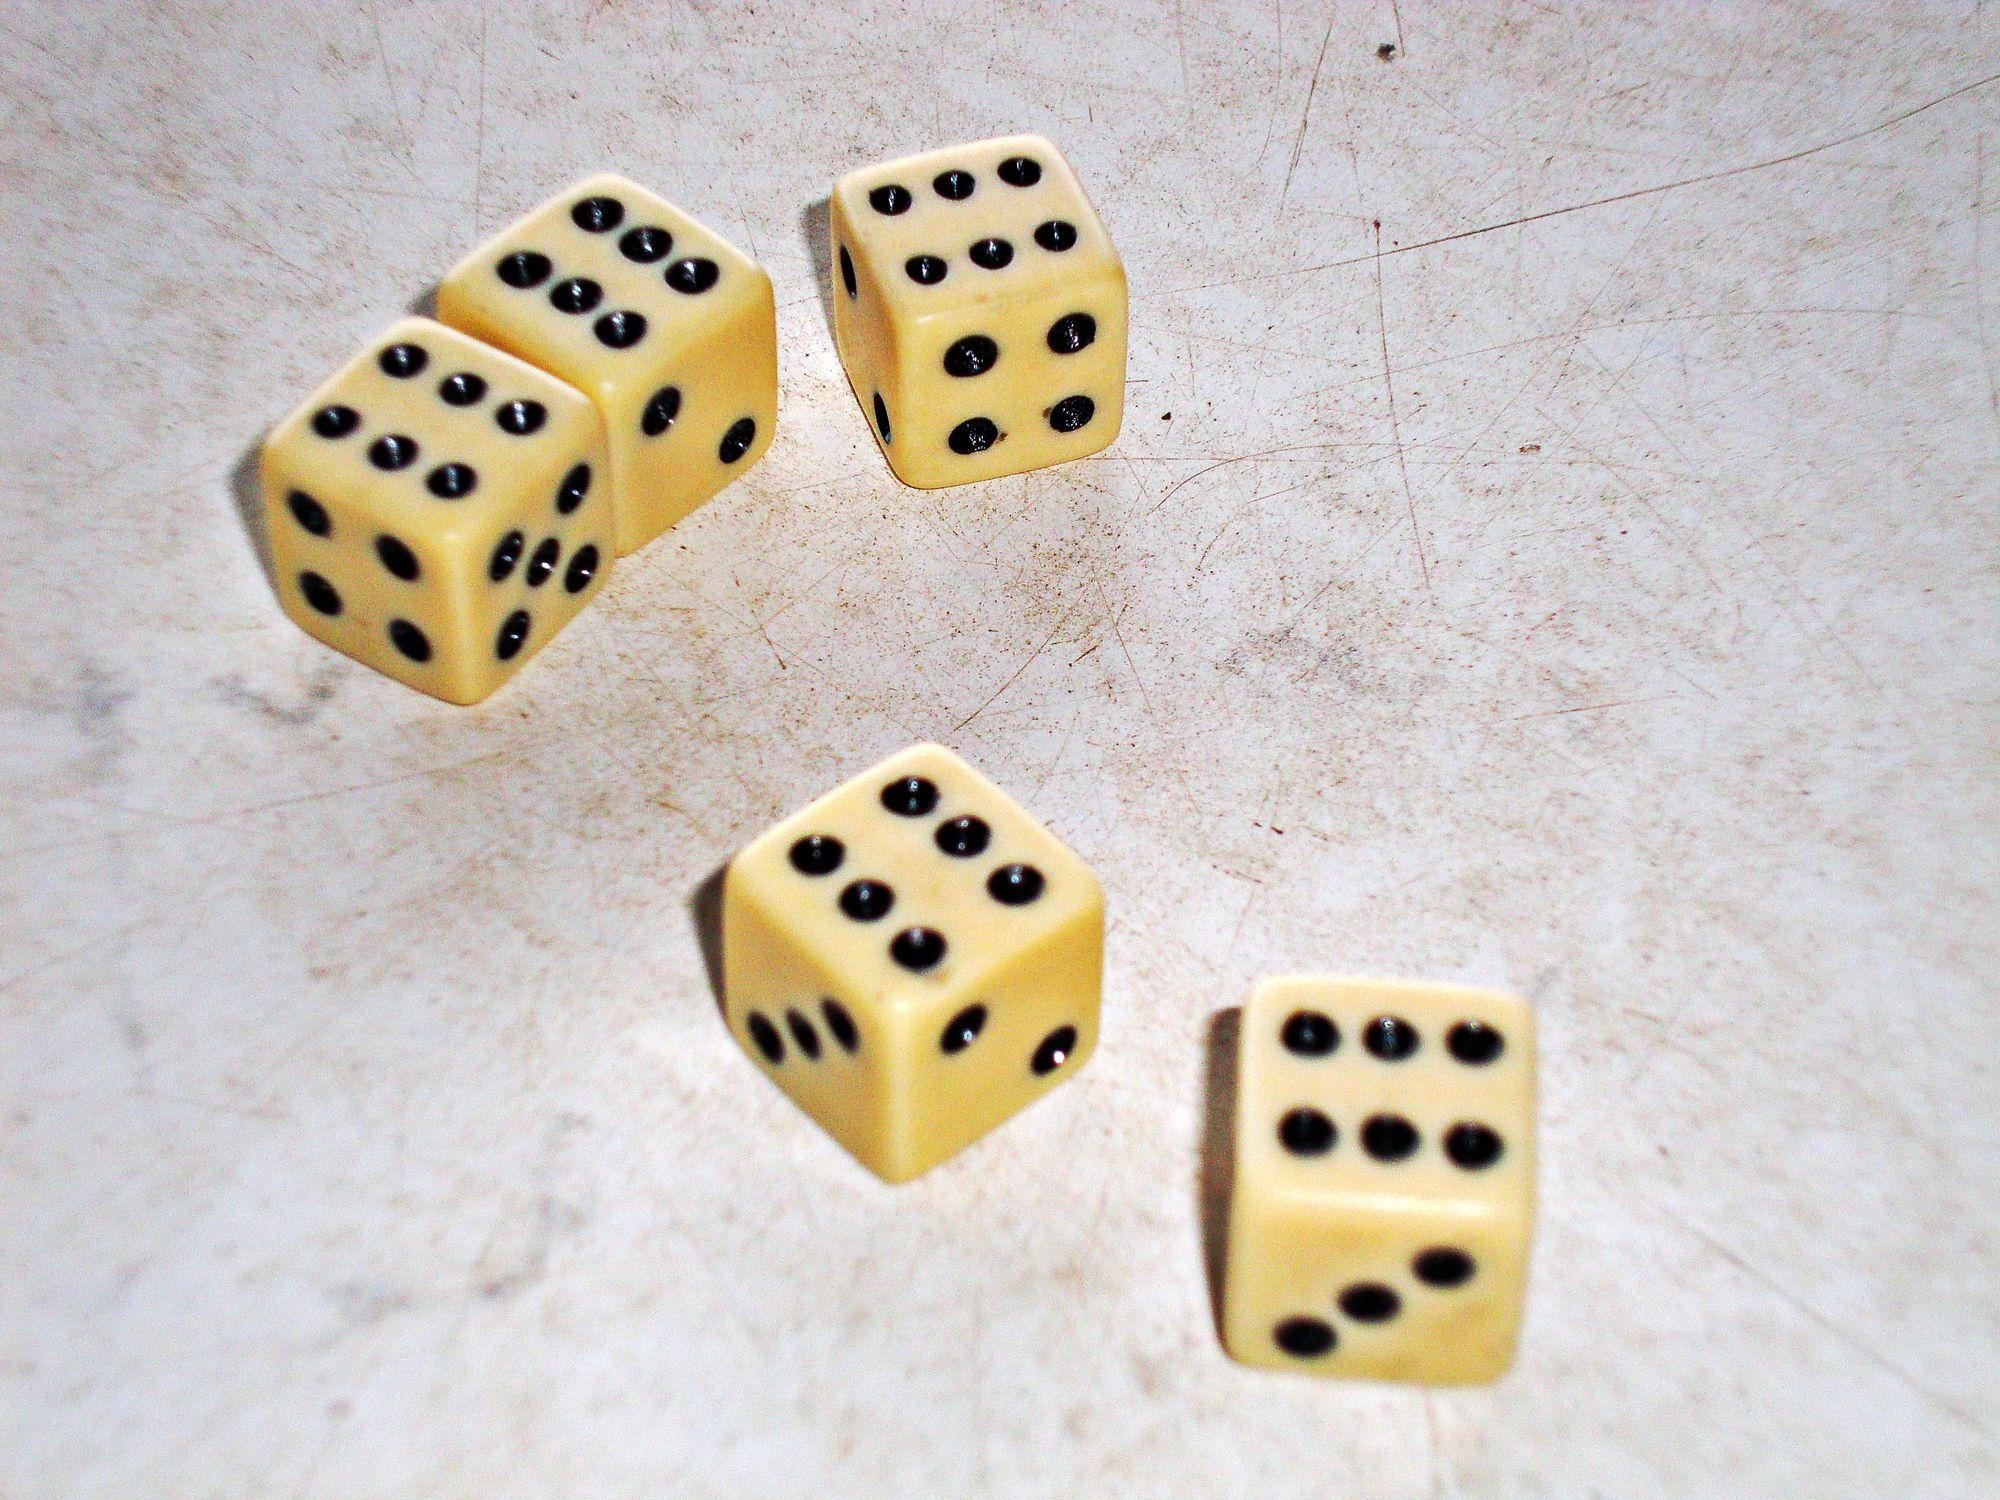 The Probability Of Rolling A Yahtzee